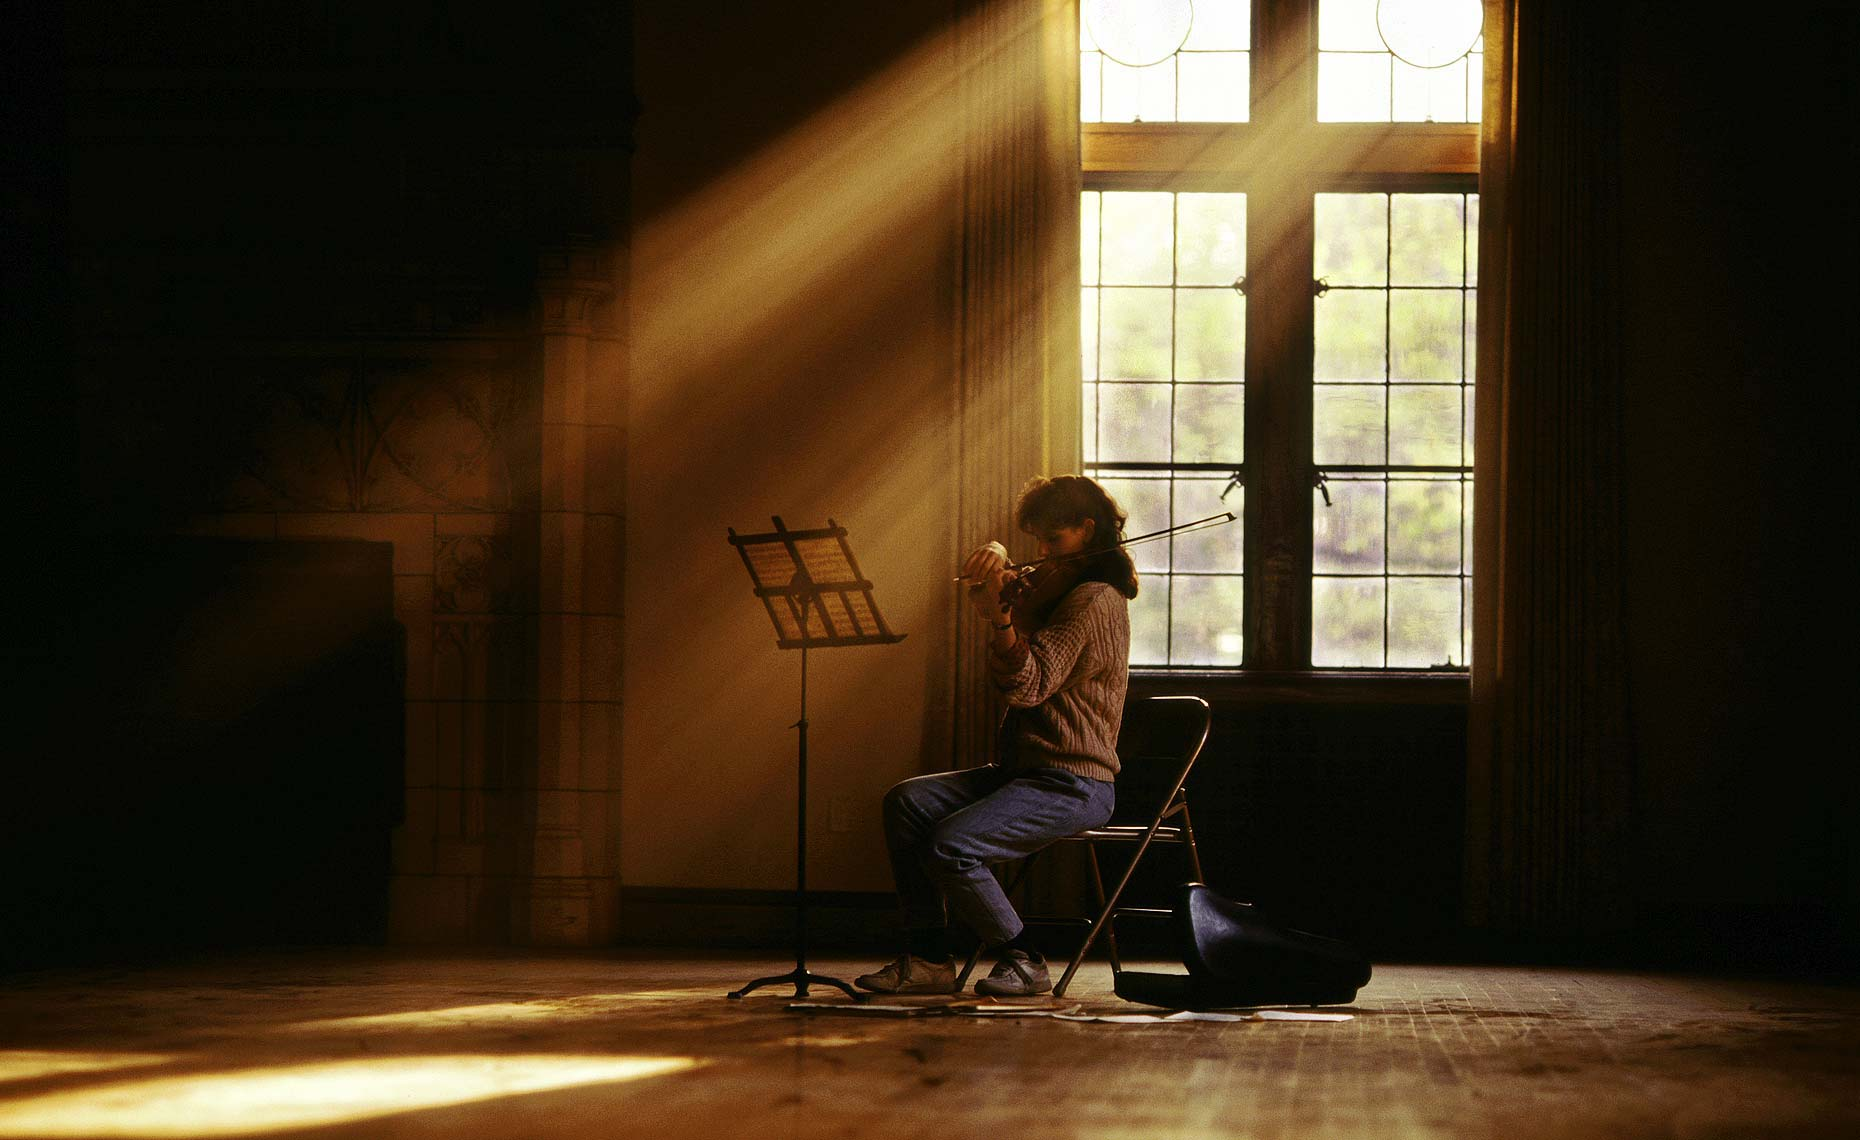 female violin player-grand room with sunlight.jpg